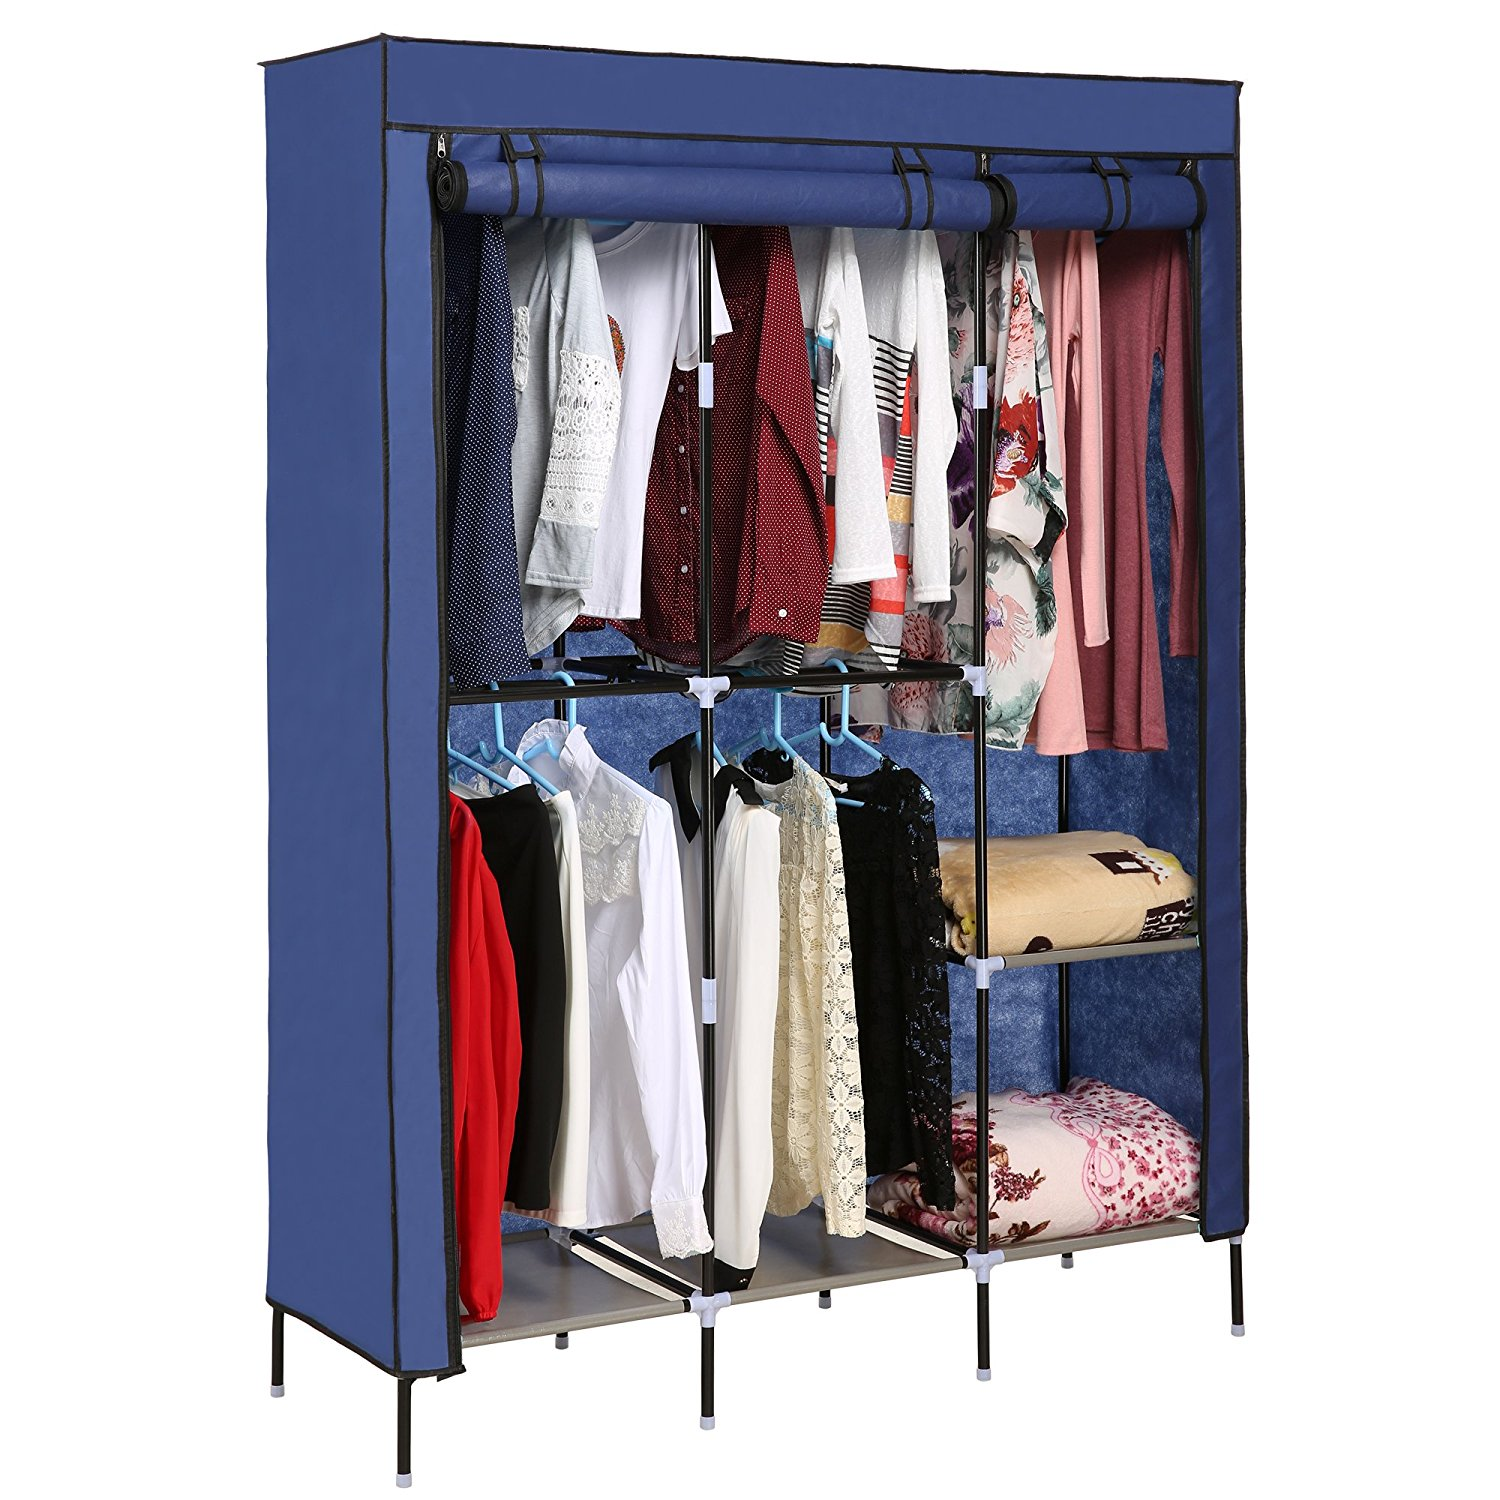 Cheap Double Hanging Closet Rod Find Double Hanging Closet Rod Deals On Line At Alibaba Com